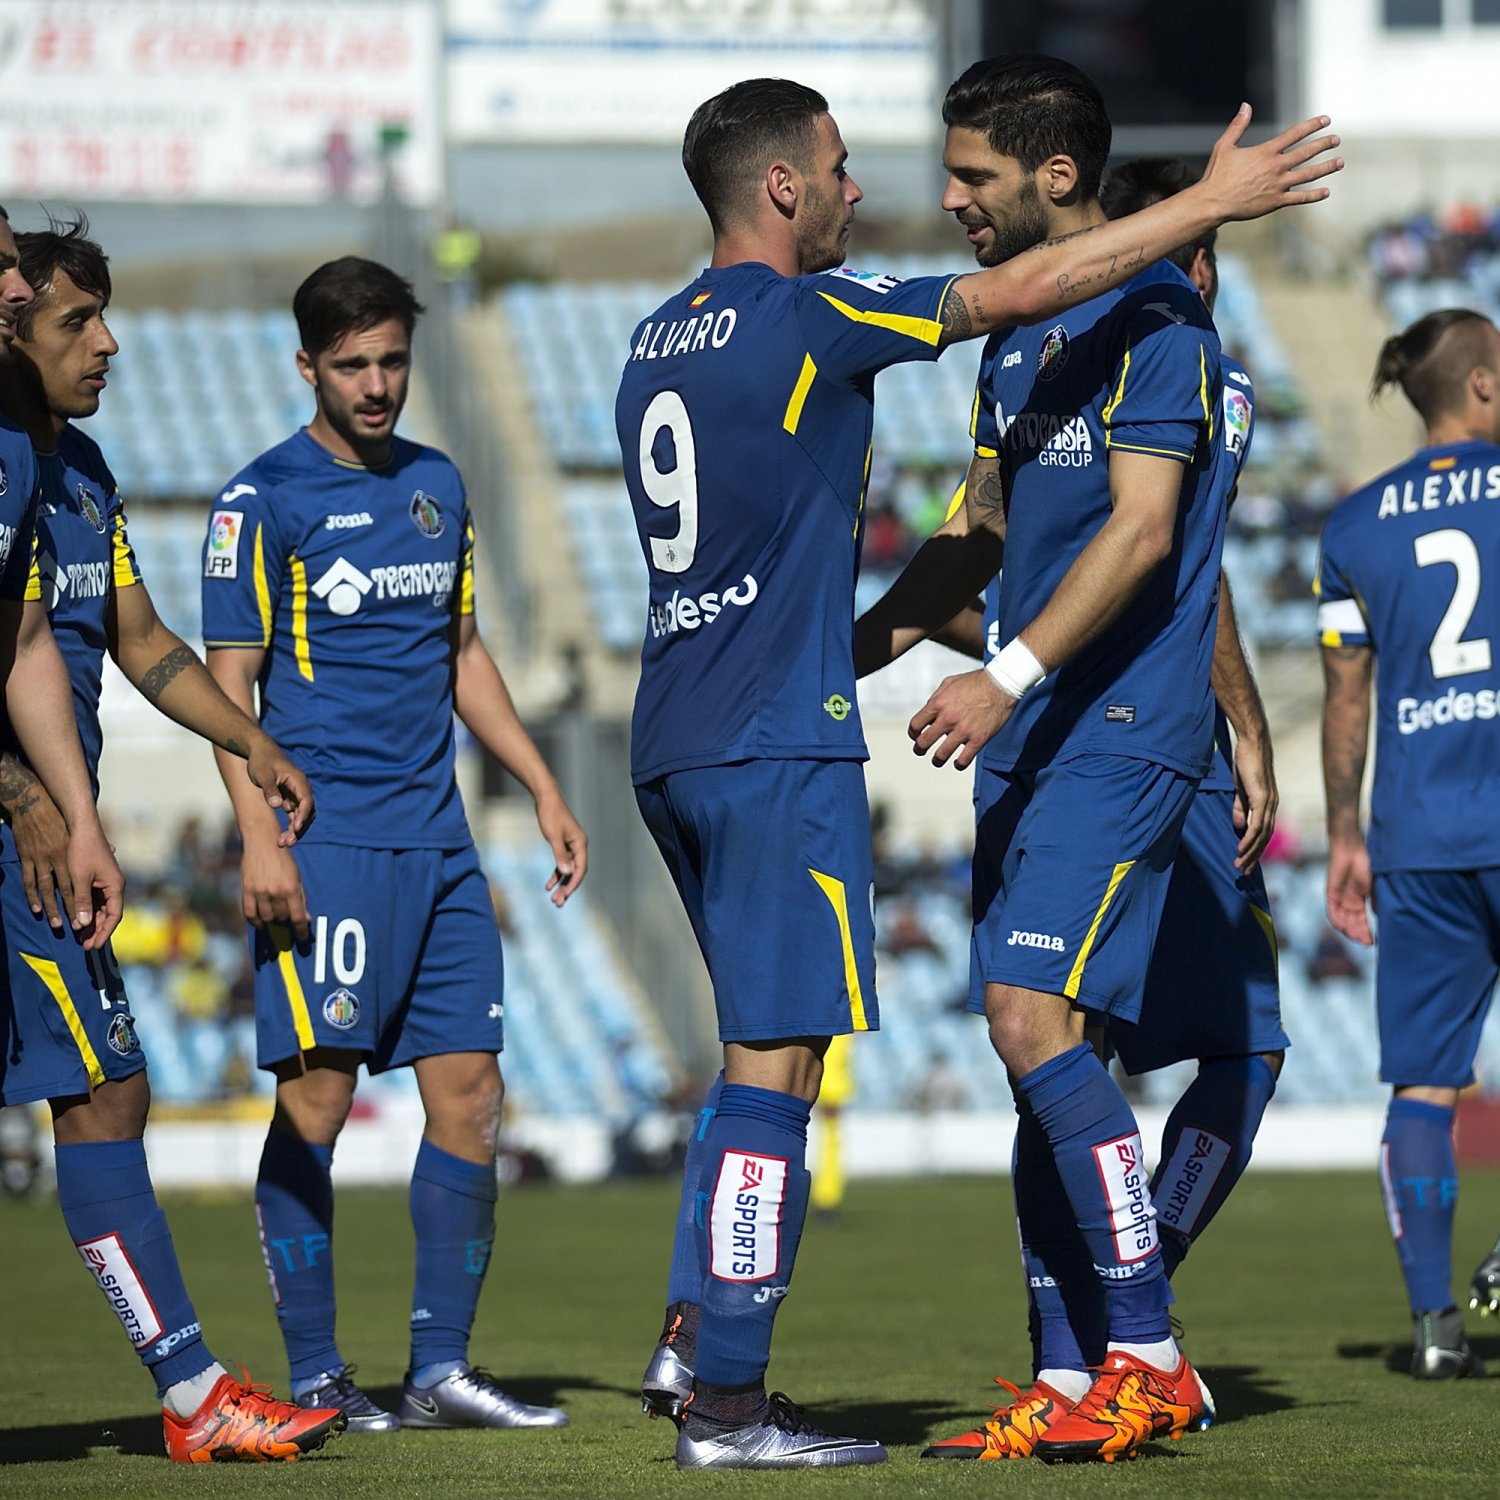 La liga table 2016 latest standings following friday 39 s week 30 results bleacher report - La liga latest results and table ...